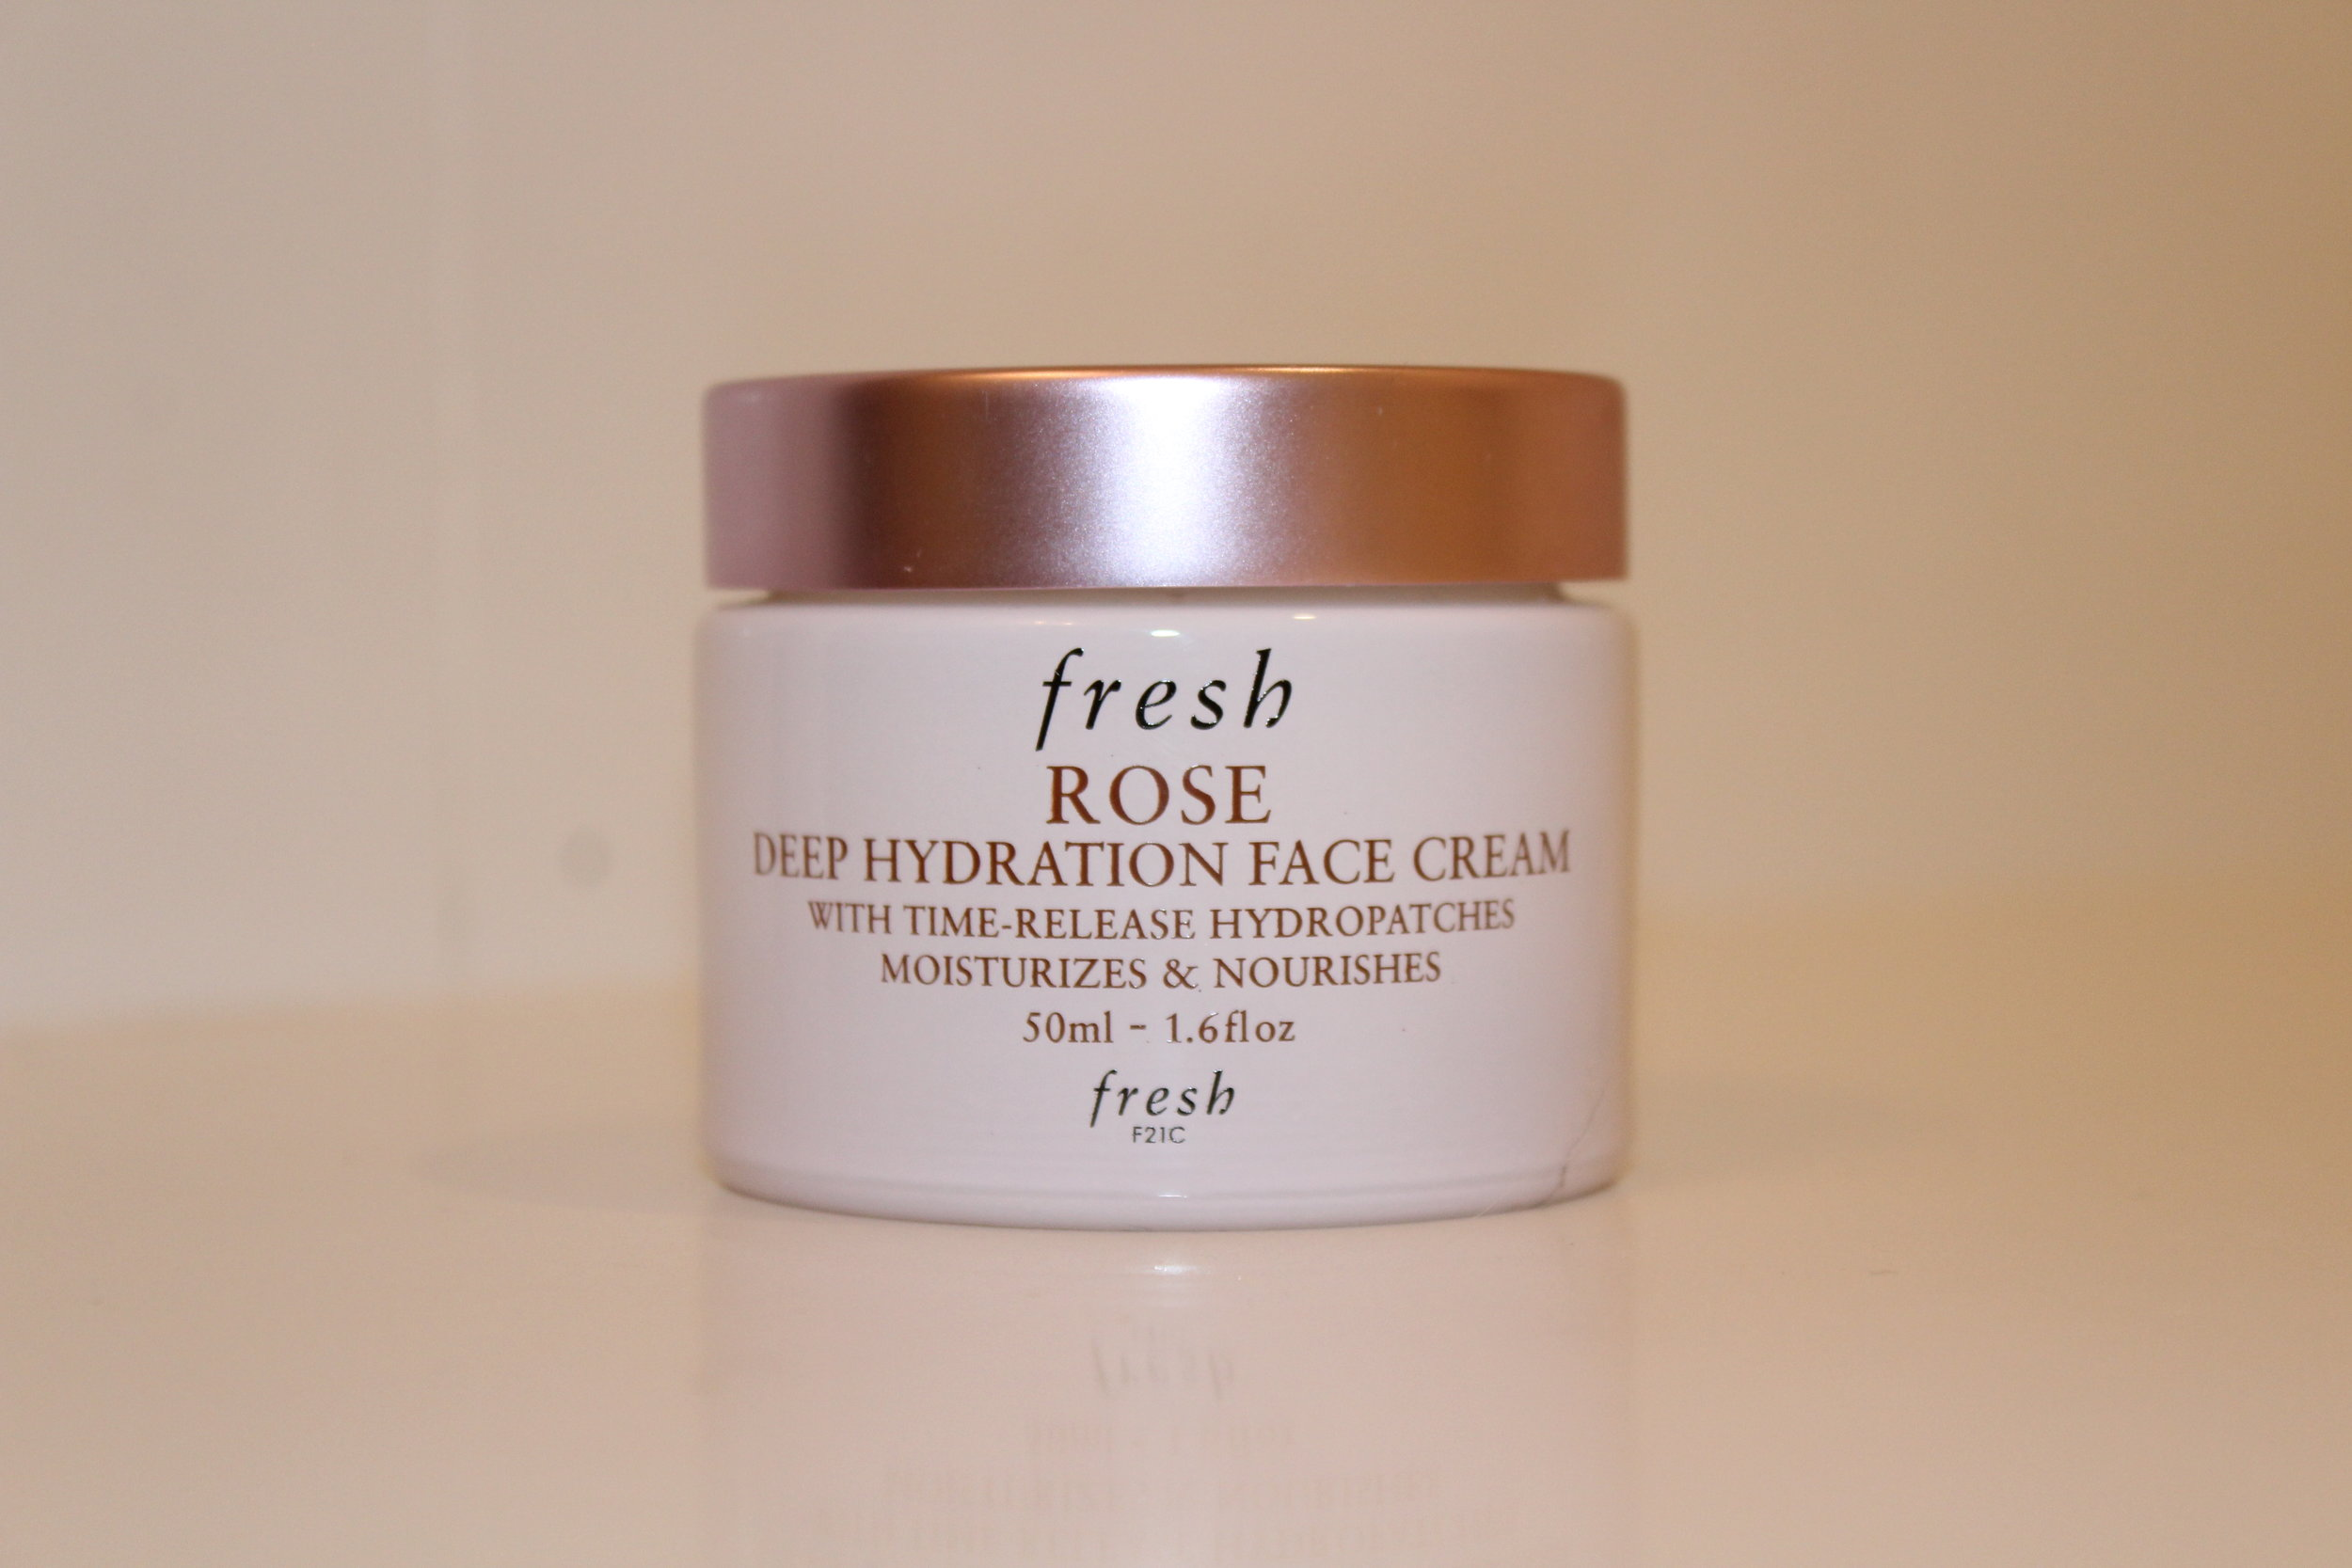 FRESH ROSE FACE CREAM - The Fresh Rose Face Cream is a spectacular morning face cream. It is light and doesn't make your skin look oily. It really helps with my redness and helps to make me look more awake in the mornings.